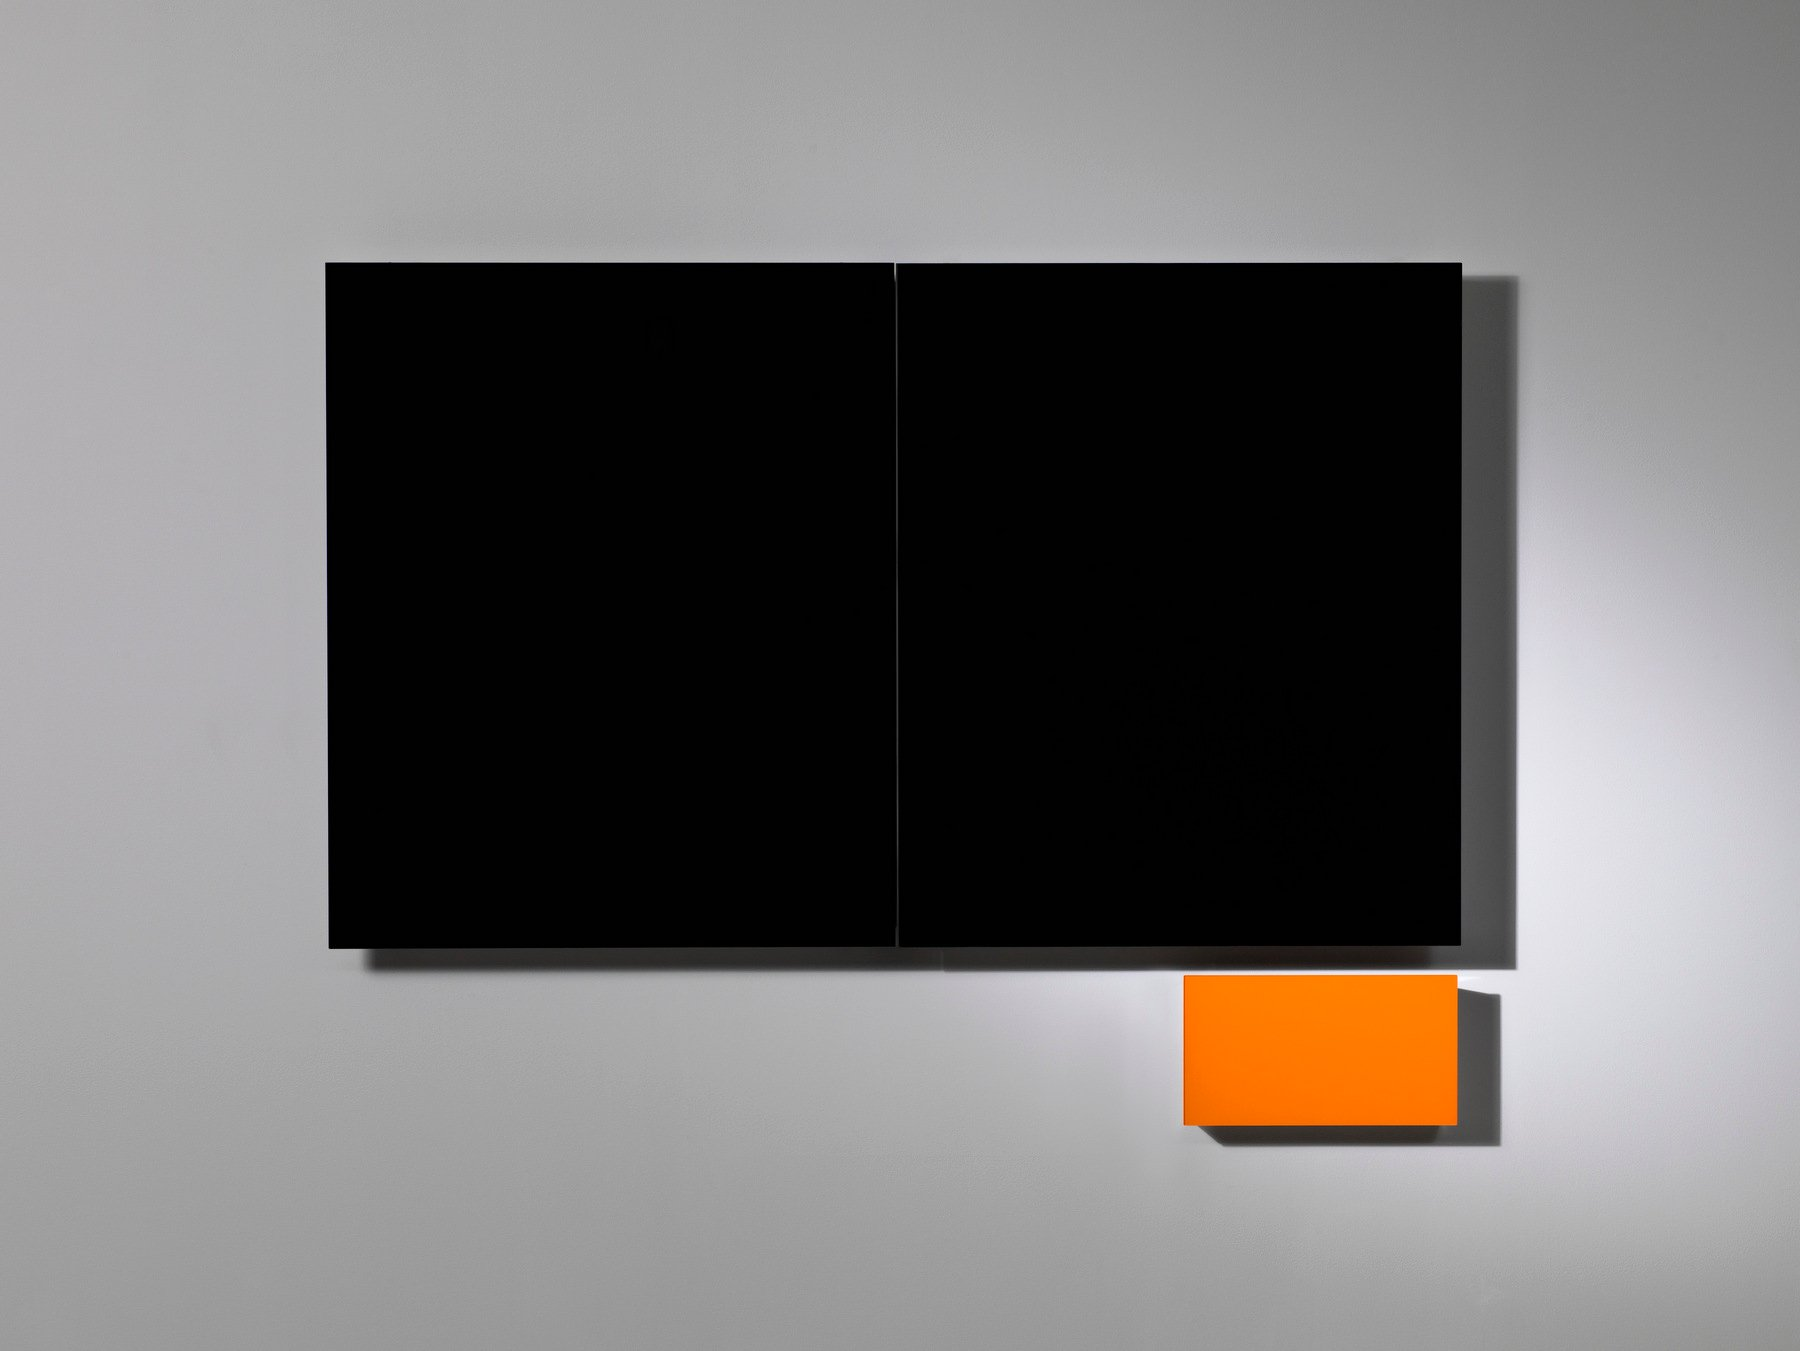 Tableau blanc magn tique coulissante mural mood conference whiteboard by lintex design christian - Tableau blanc mural ...